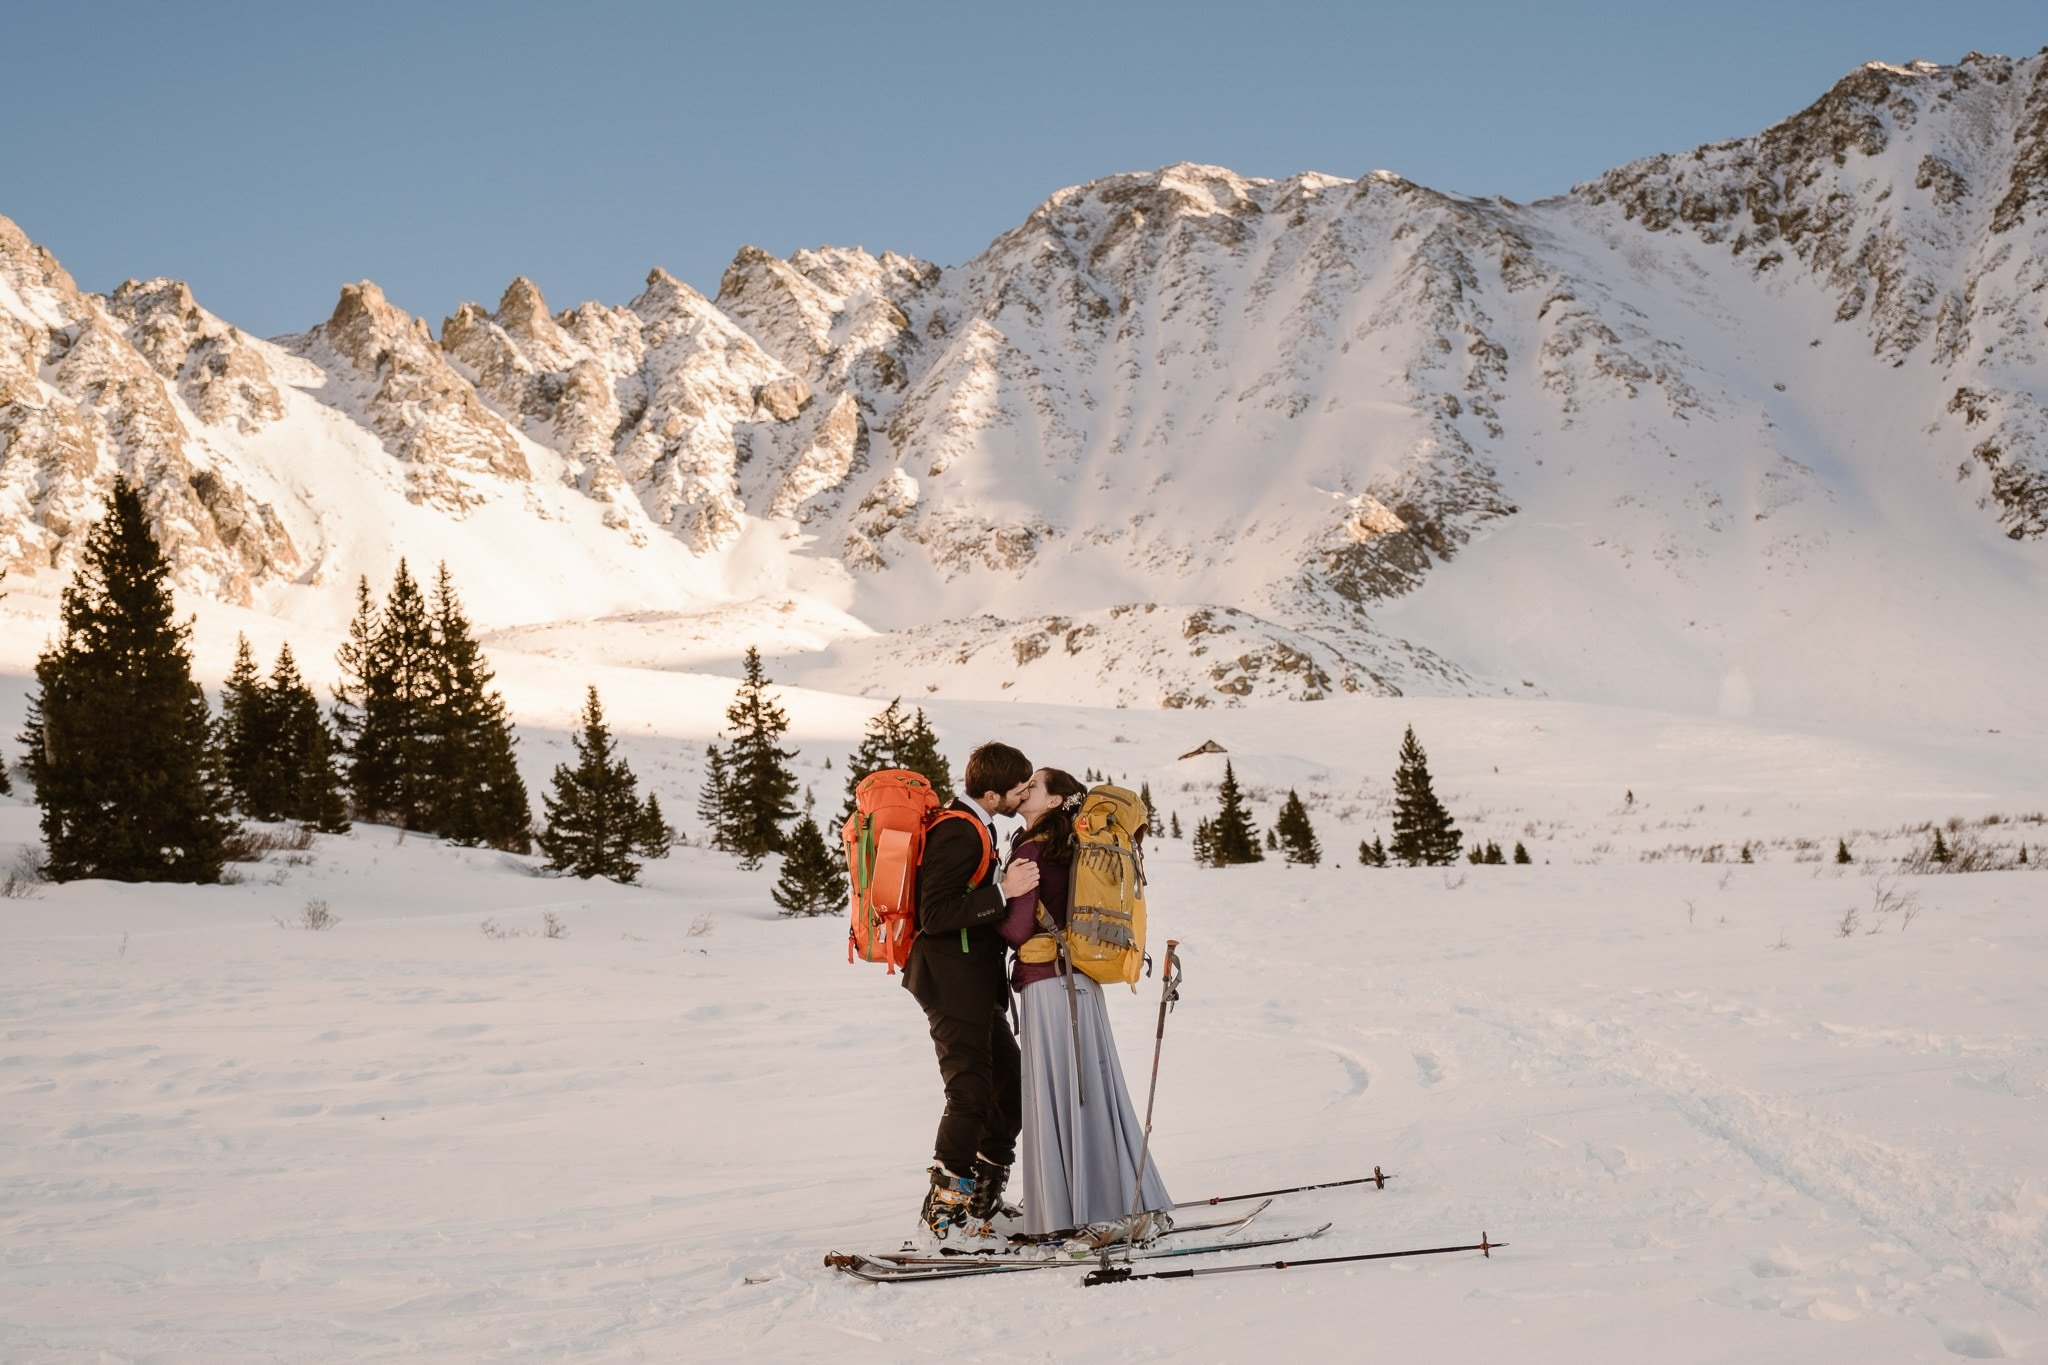 Bride and groom wearing backpacks, winter skiing elopement in Colorado mountains, backcountry skiing wedding